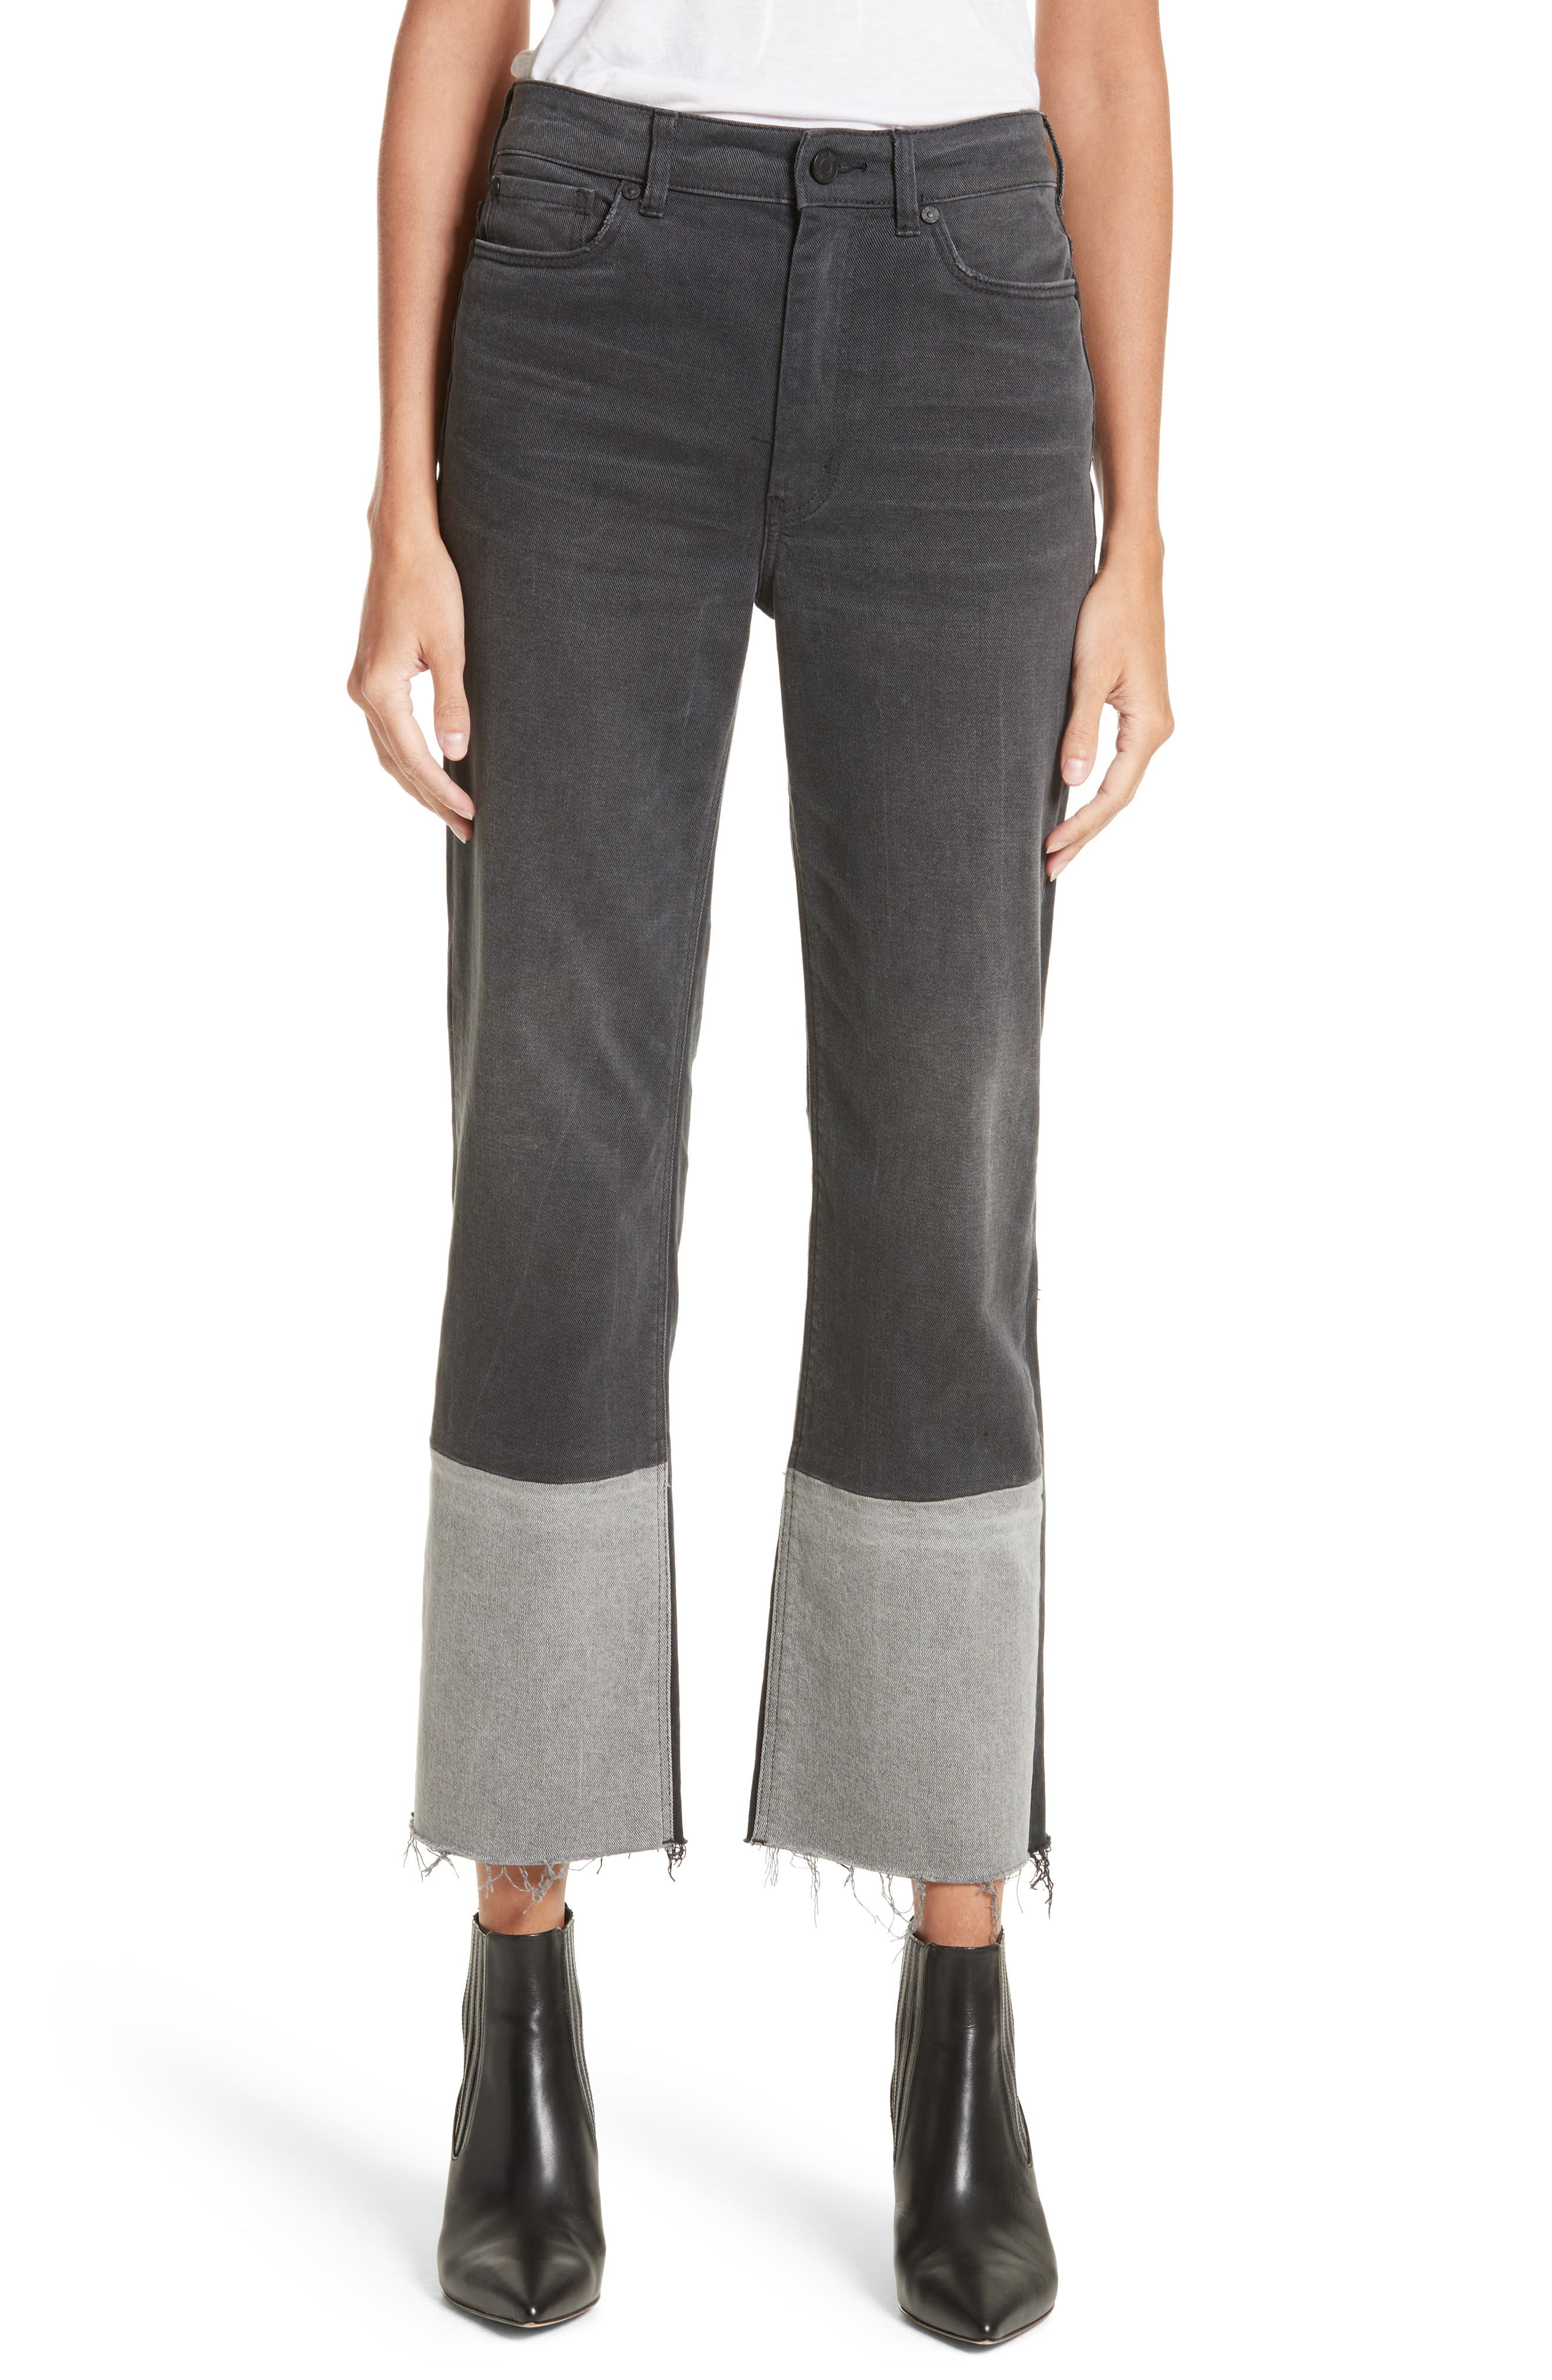 Patch Jeans,                         Main,                         color, Grey Combo